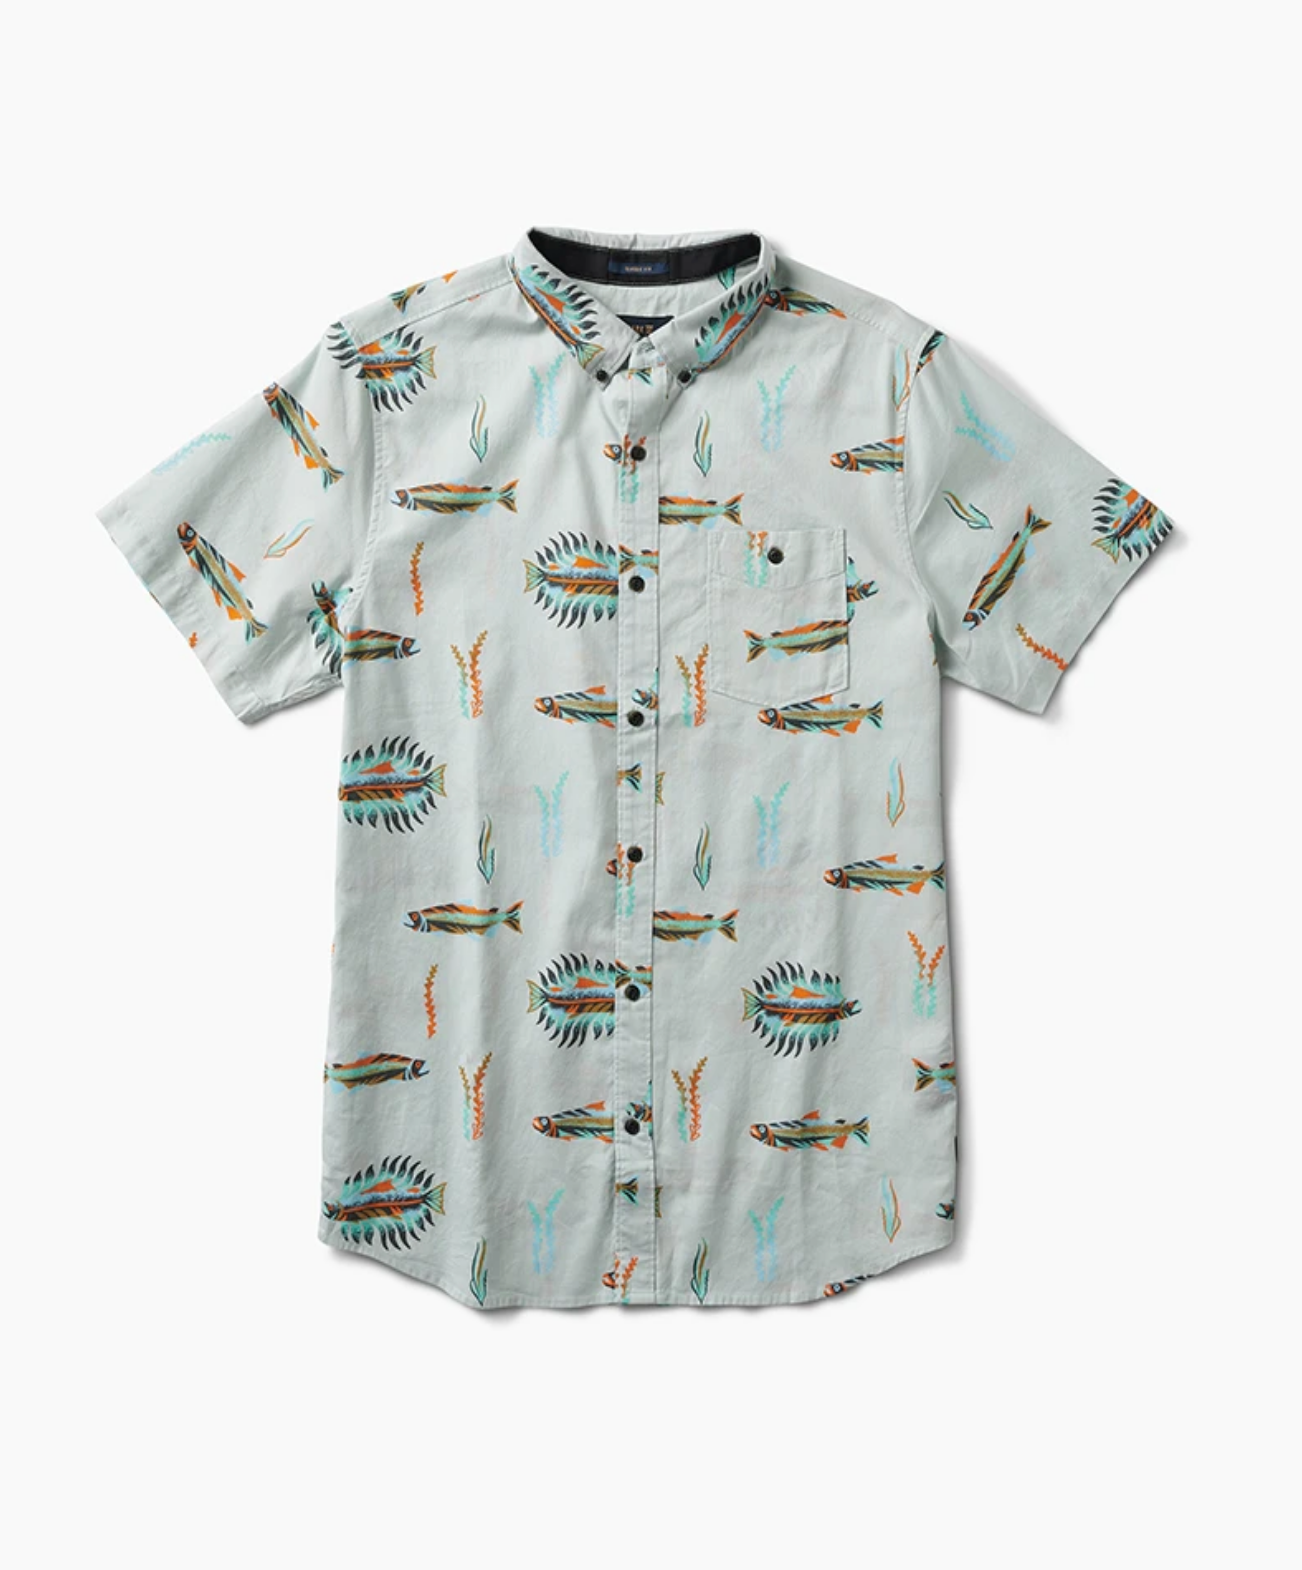 BAIT & SWITCH BUTTON UP SHIRT